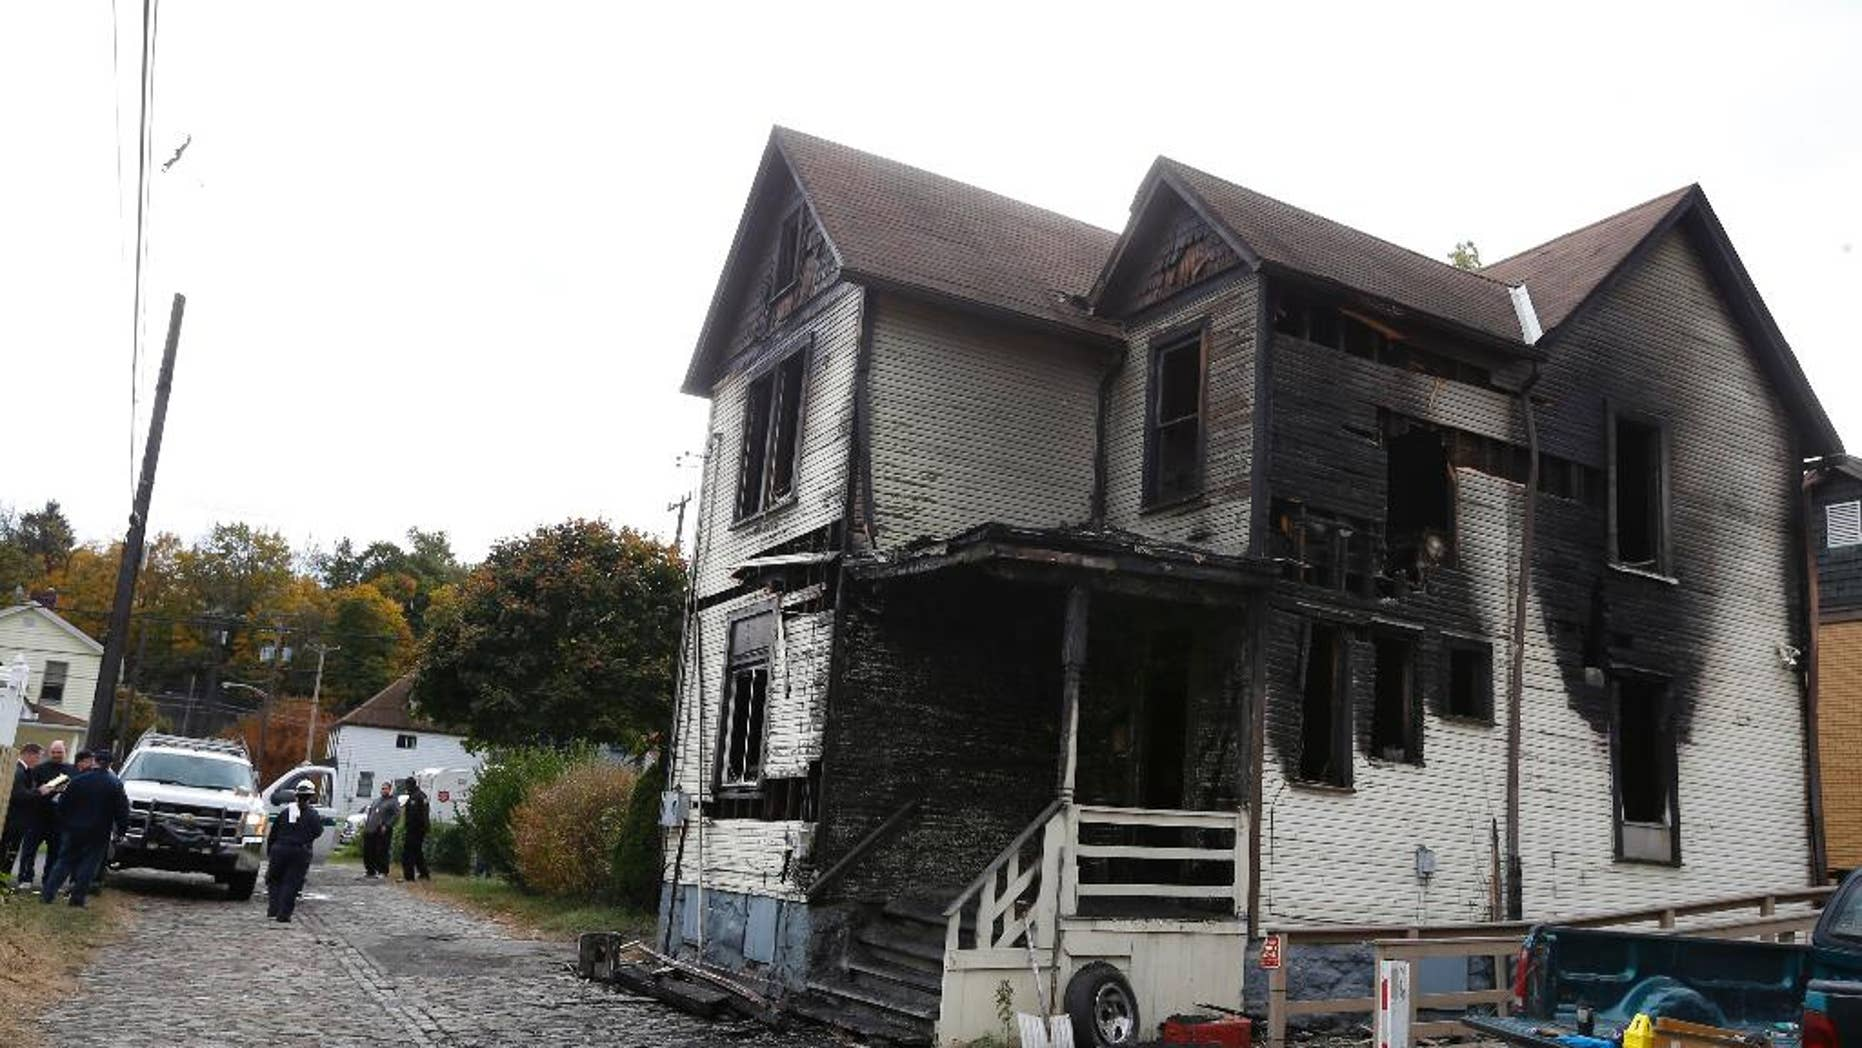 FILE - In this Saturday, Oct. 18, 2014 file photo, emergency workers gather in front of a burned house in McKeesport, Pa. Authorities allege that Ryan Williams, 24, set the Pittsburgh-area fire which killed six people, four of them children, because he wanted to get revenge on someone in the house. Williams, of McKeesport, was charged in Allegheny County on Friday, Jan, 16, 2015 with six counts of criminal homicide, arson and burglary in the fire. The blaze killed 55-year-old Ronald Egenlauf Sr., his 27-year-old daughter-in-law Hope Jordan, and her four children, ages 2 through 7. (AP Photo/Keith Srakocic)